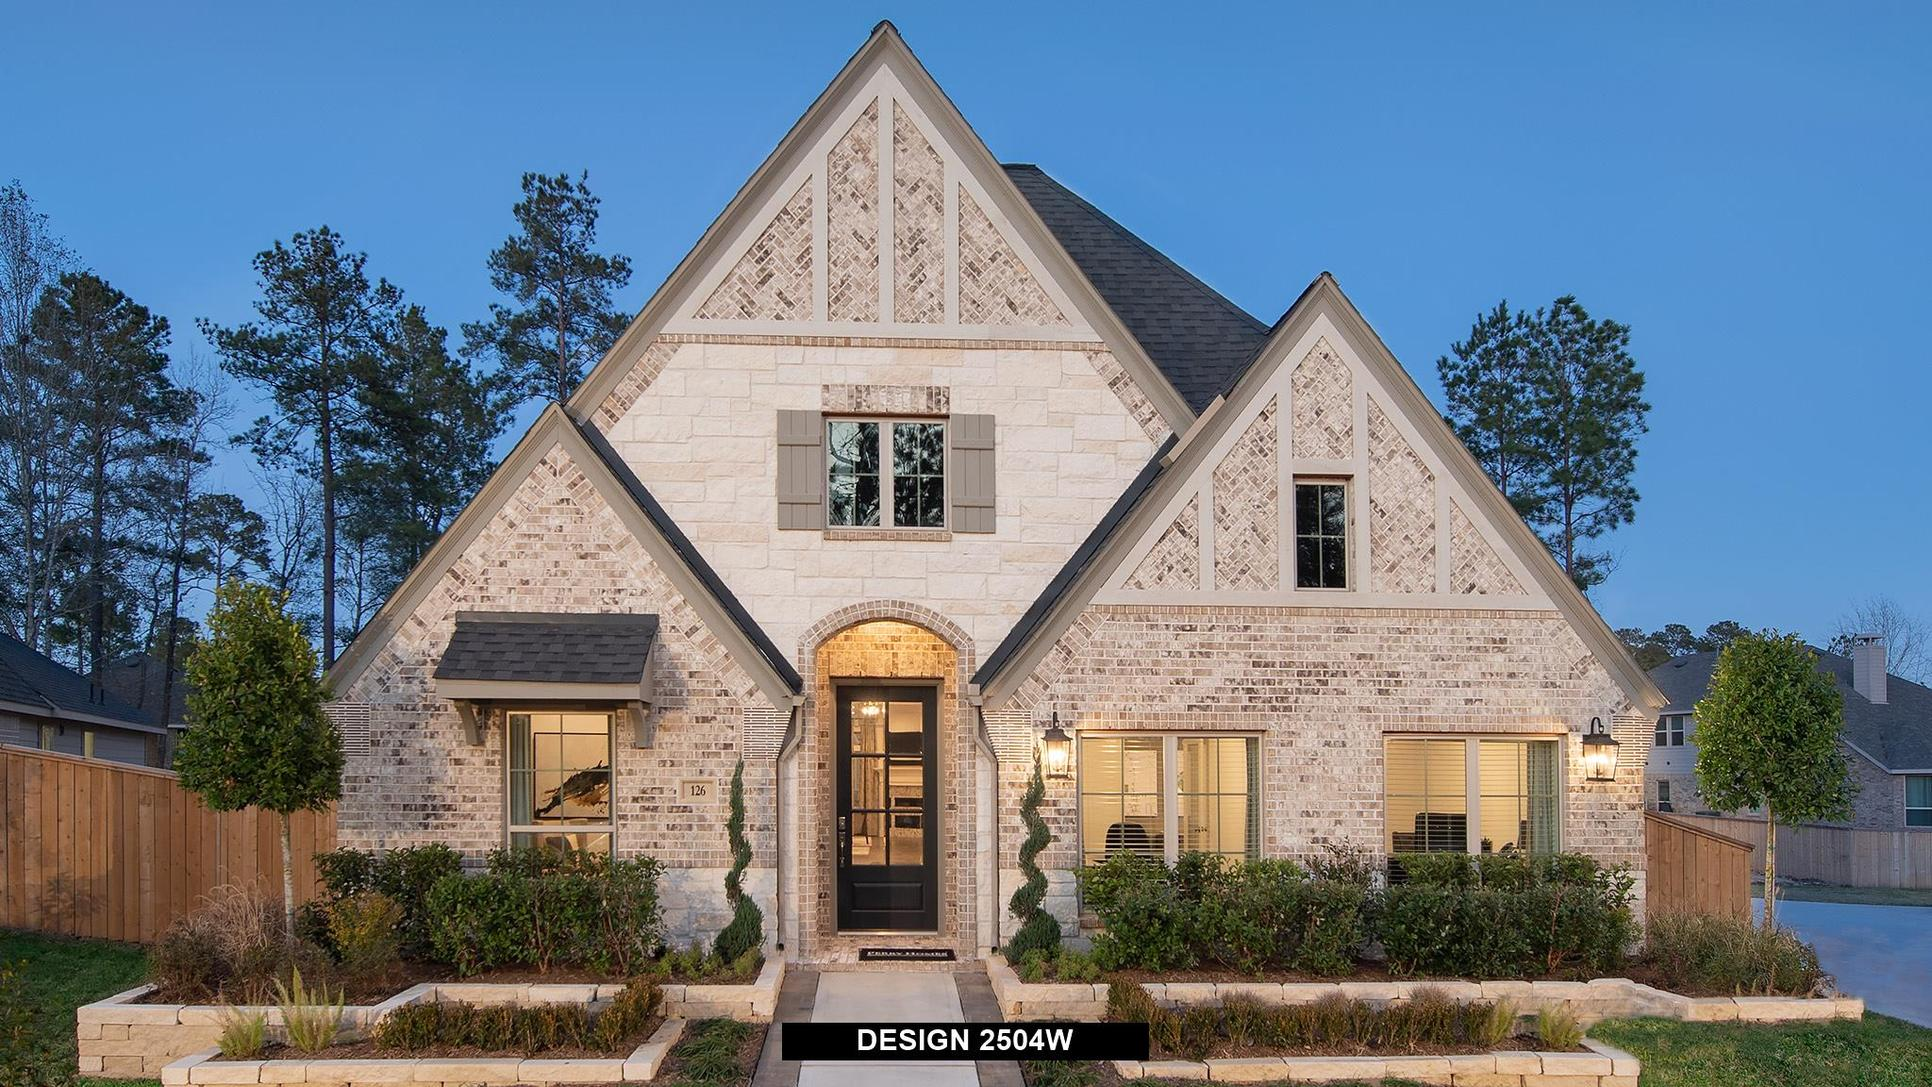 Plan 2504W:Representative photo.  Features and specifications may vary by community.